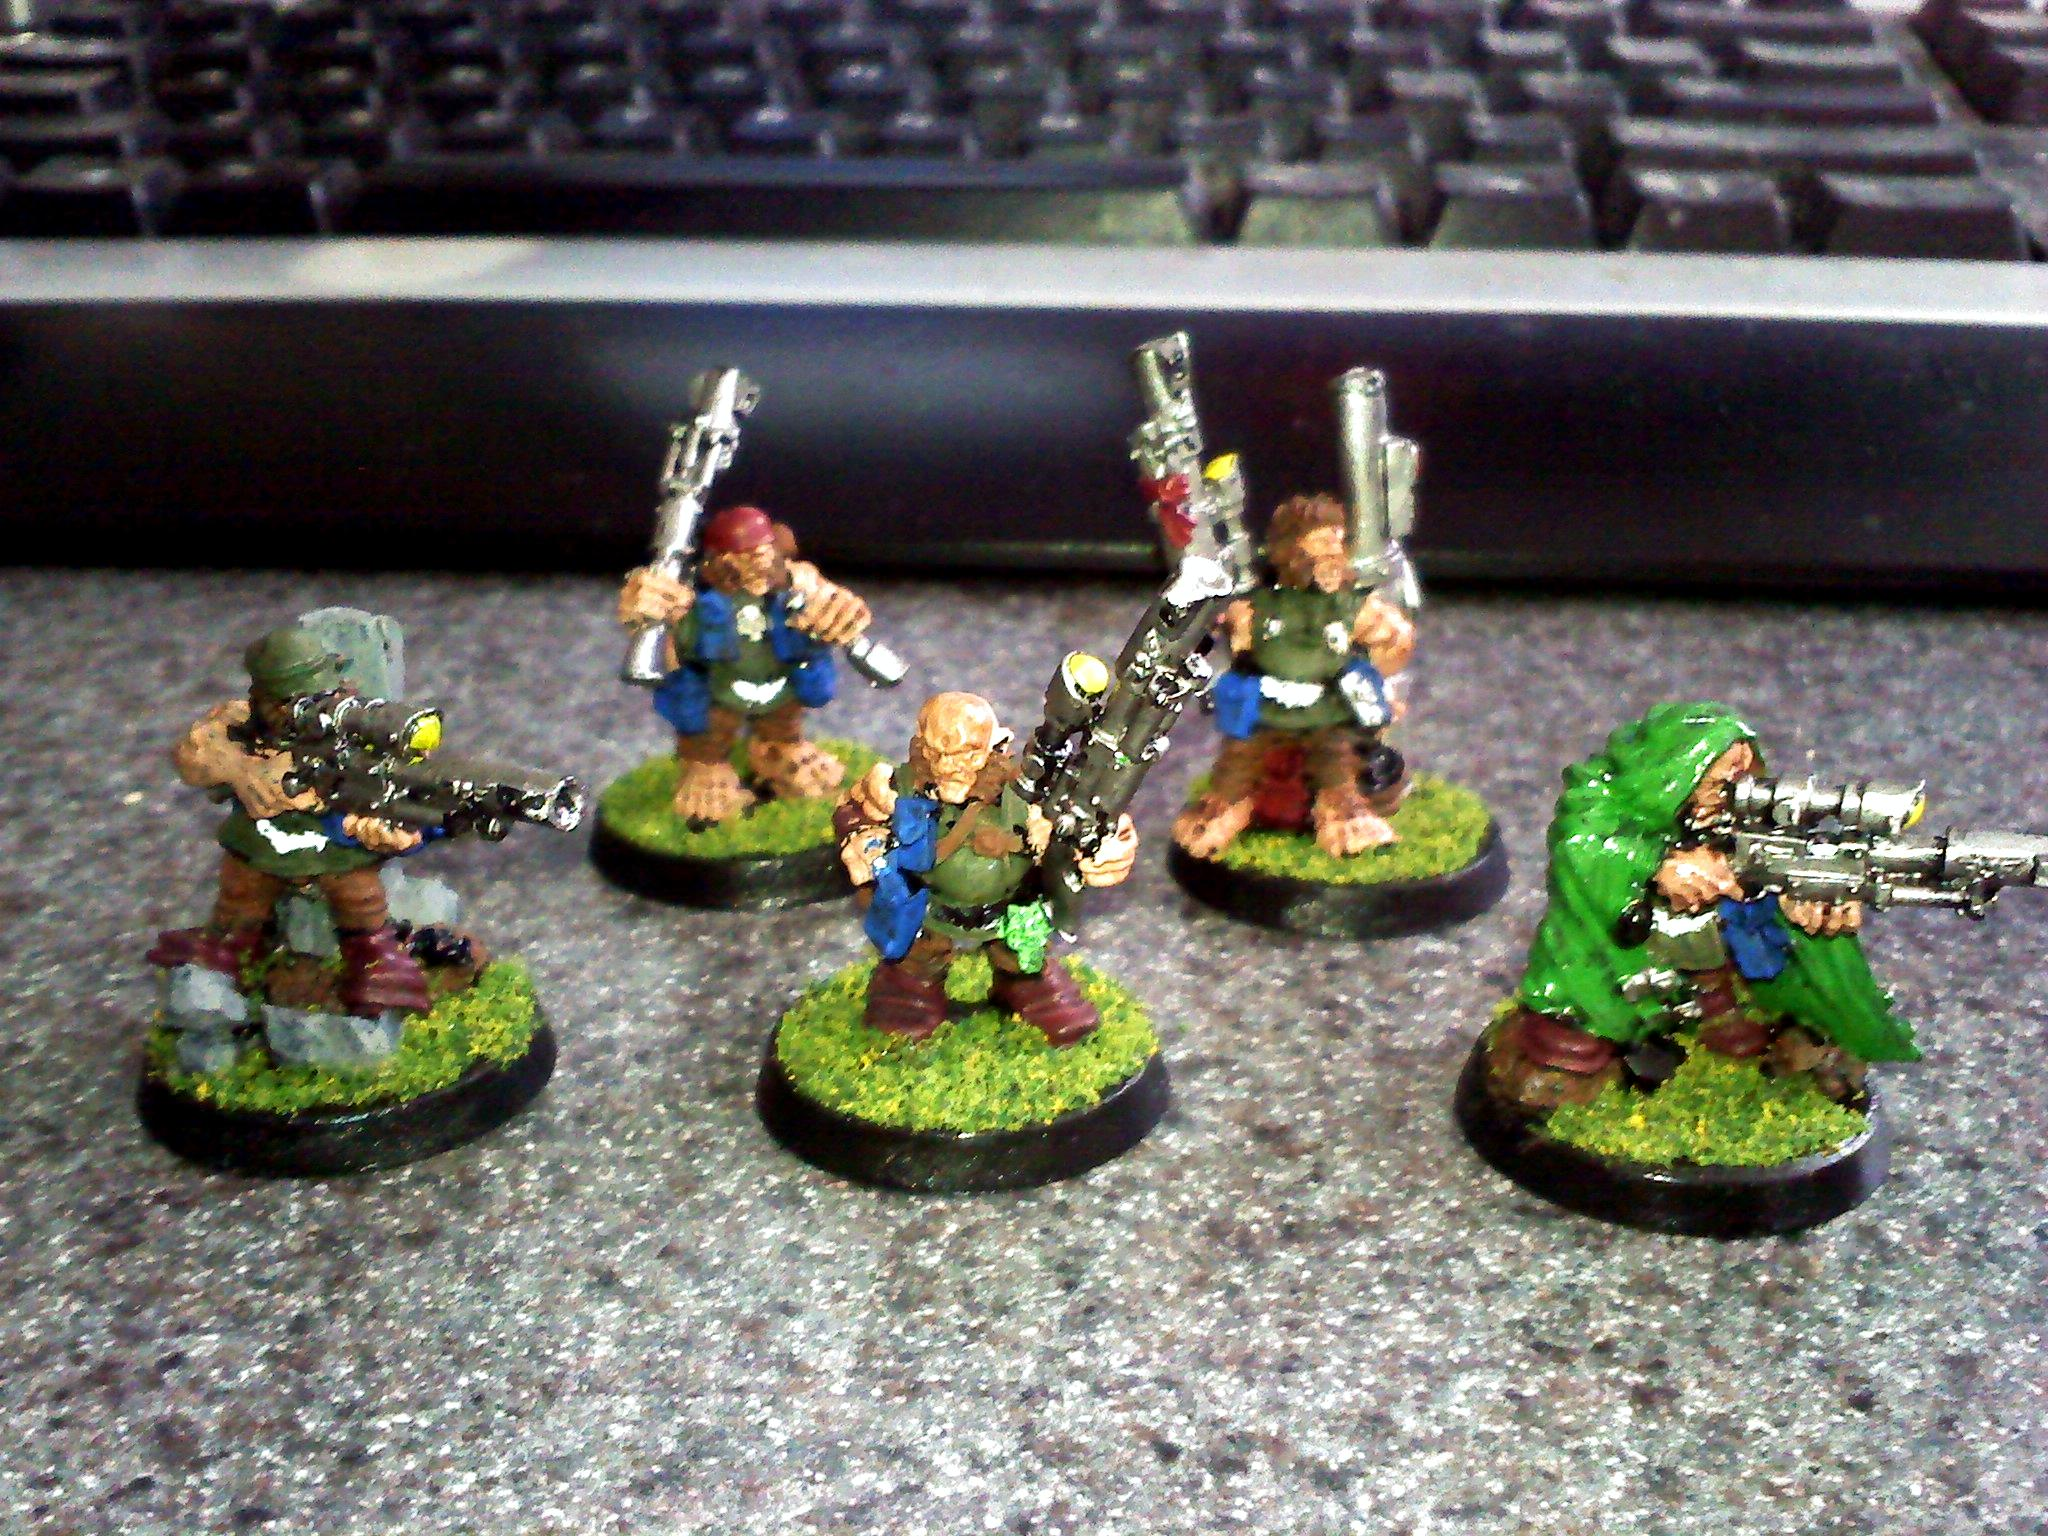 Imperial Guard, Ratlings, Sniper Rifle, Snipers, Warhammer 40,000